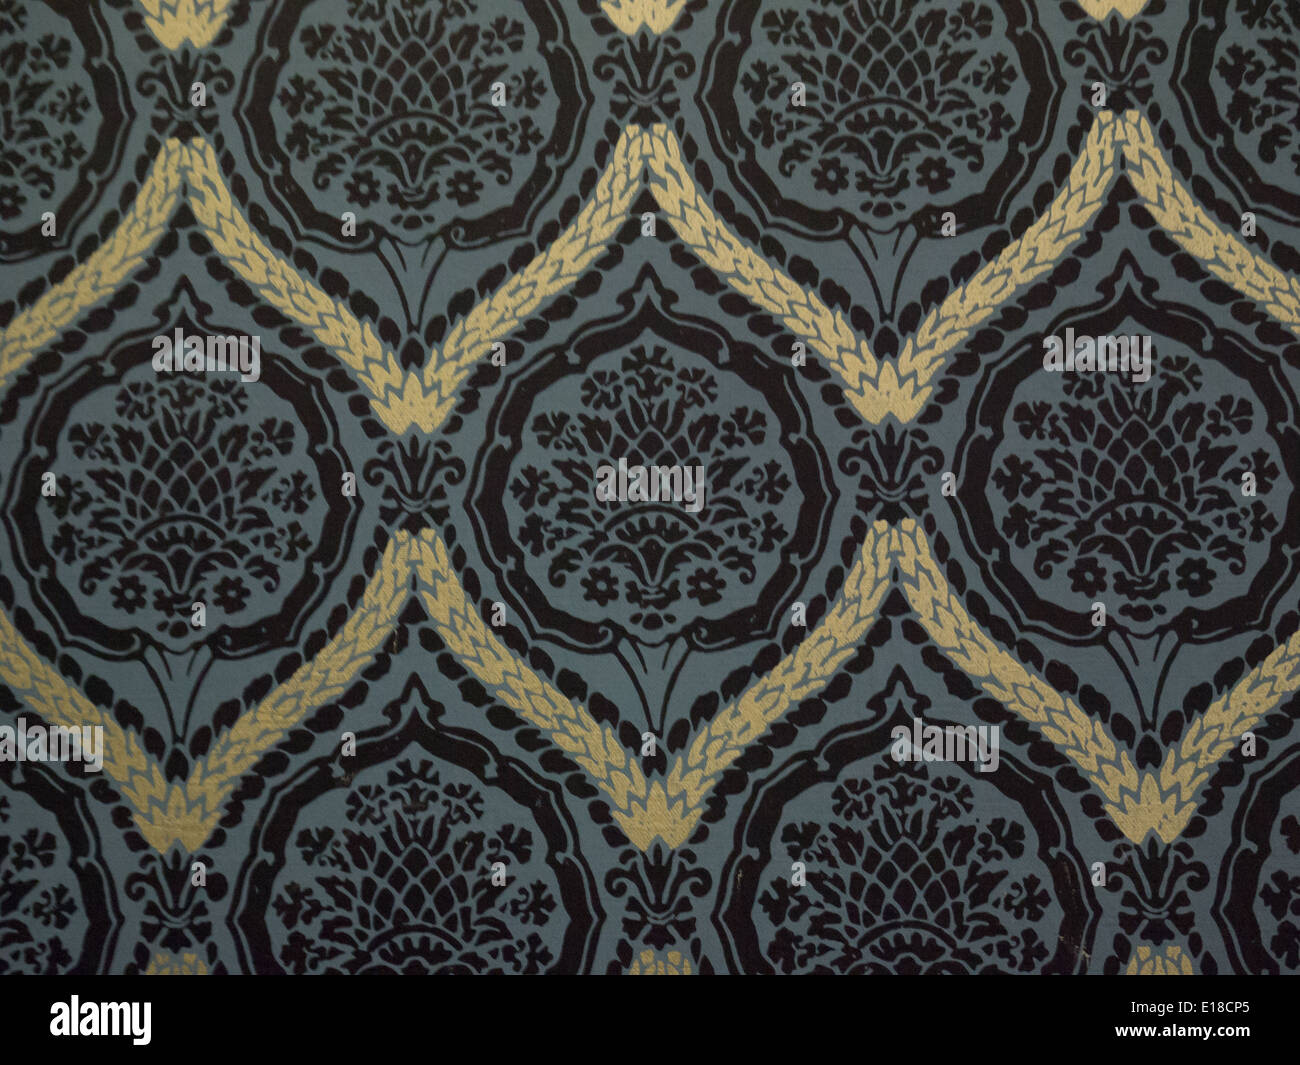 Vintage wallpaper stockfotos vintage wallpaper bilder for Tapete muster blau